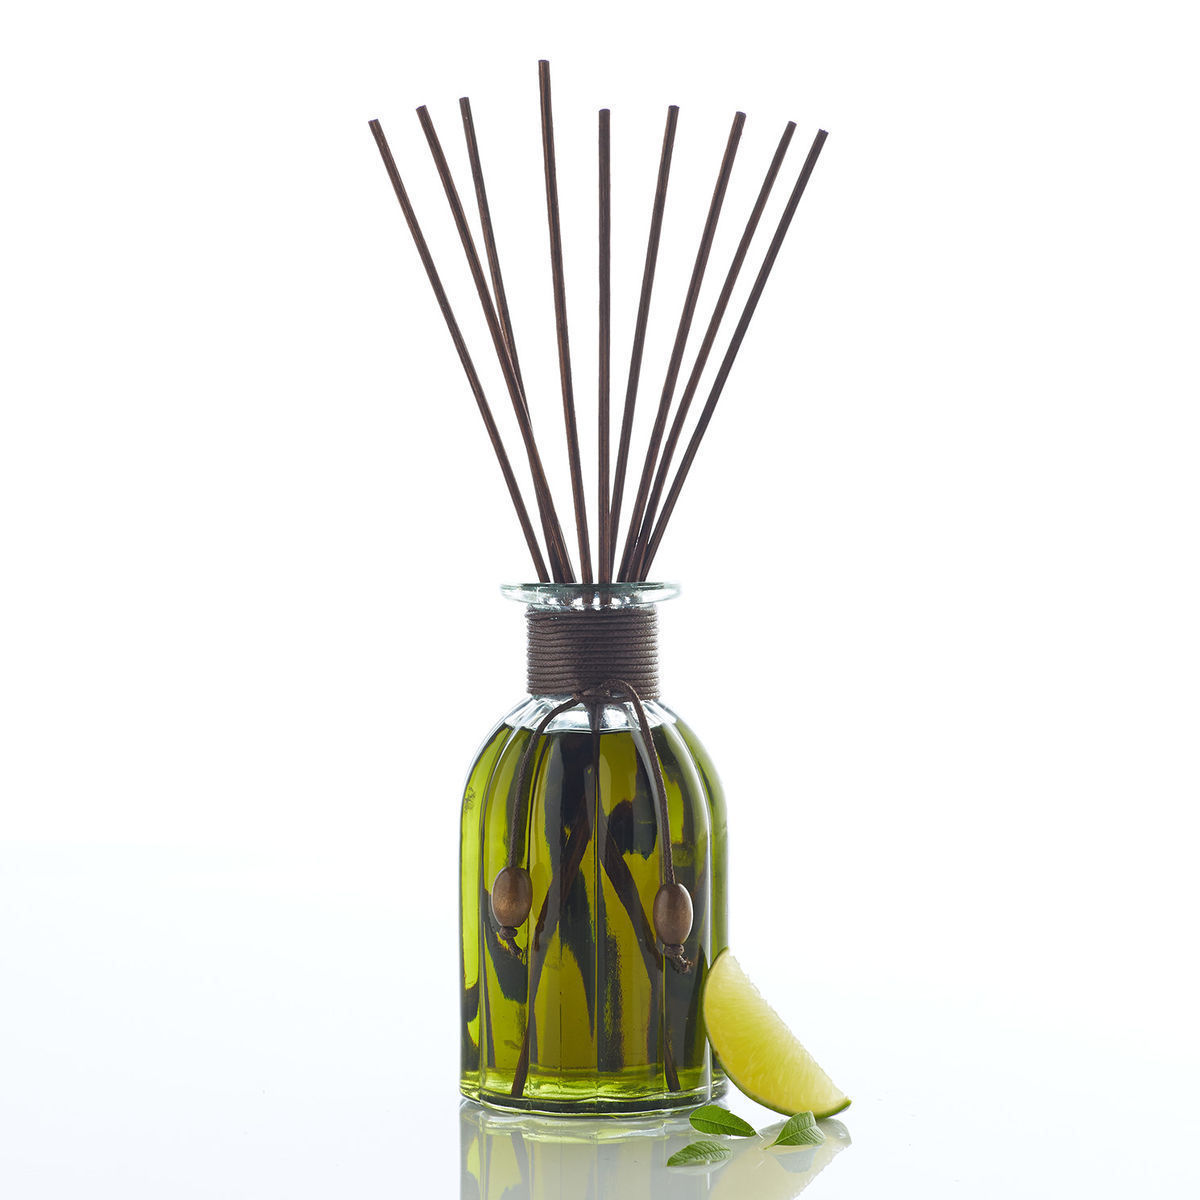 20c9076442ca Pier 1 Imports concentrated Reed Diffuser and 50 similar items